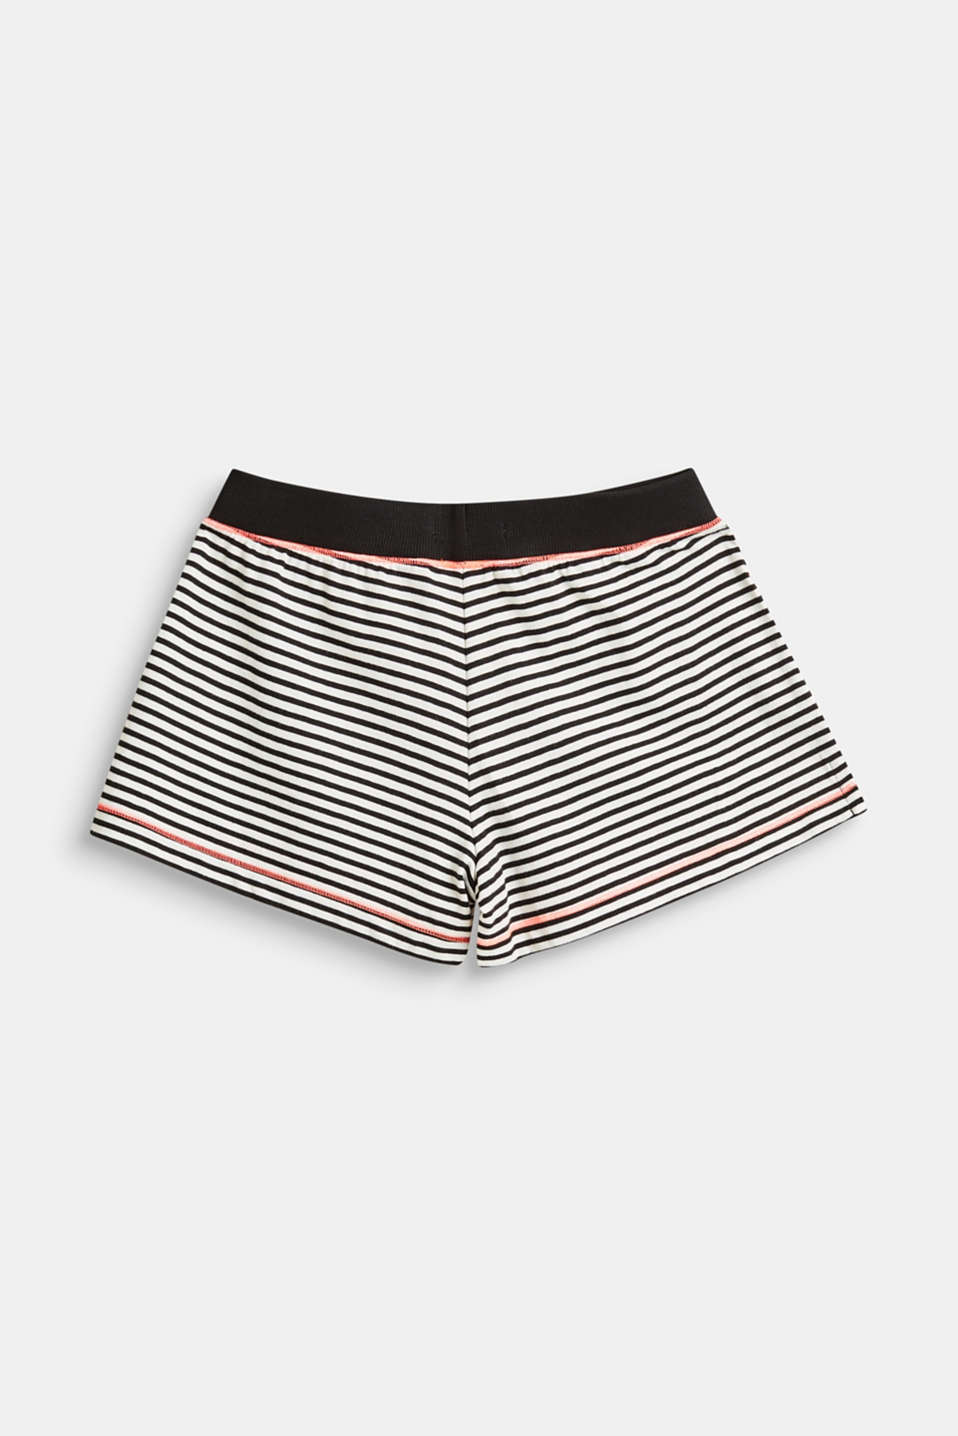 Striped pyjama shorts, 100% cotton